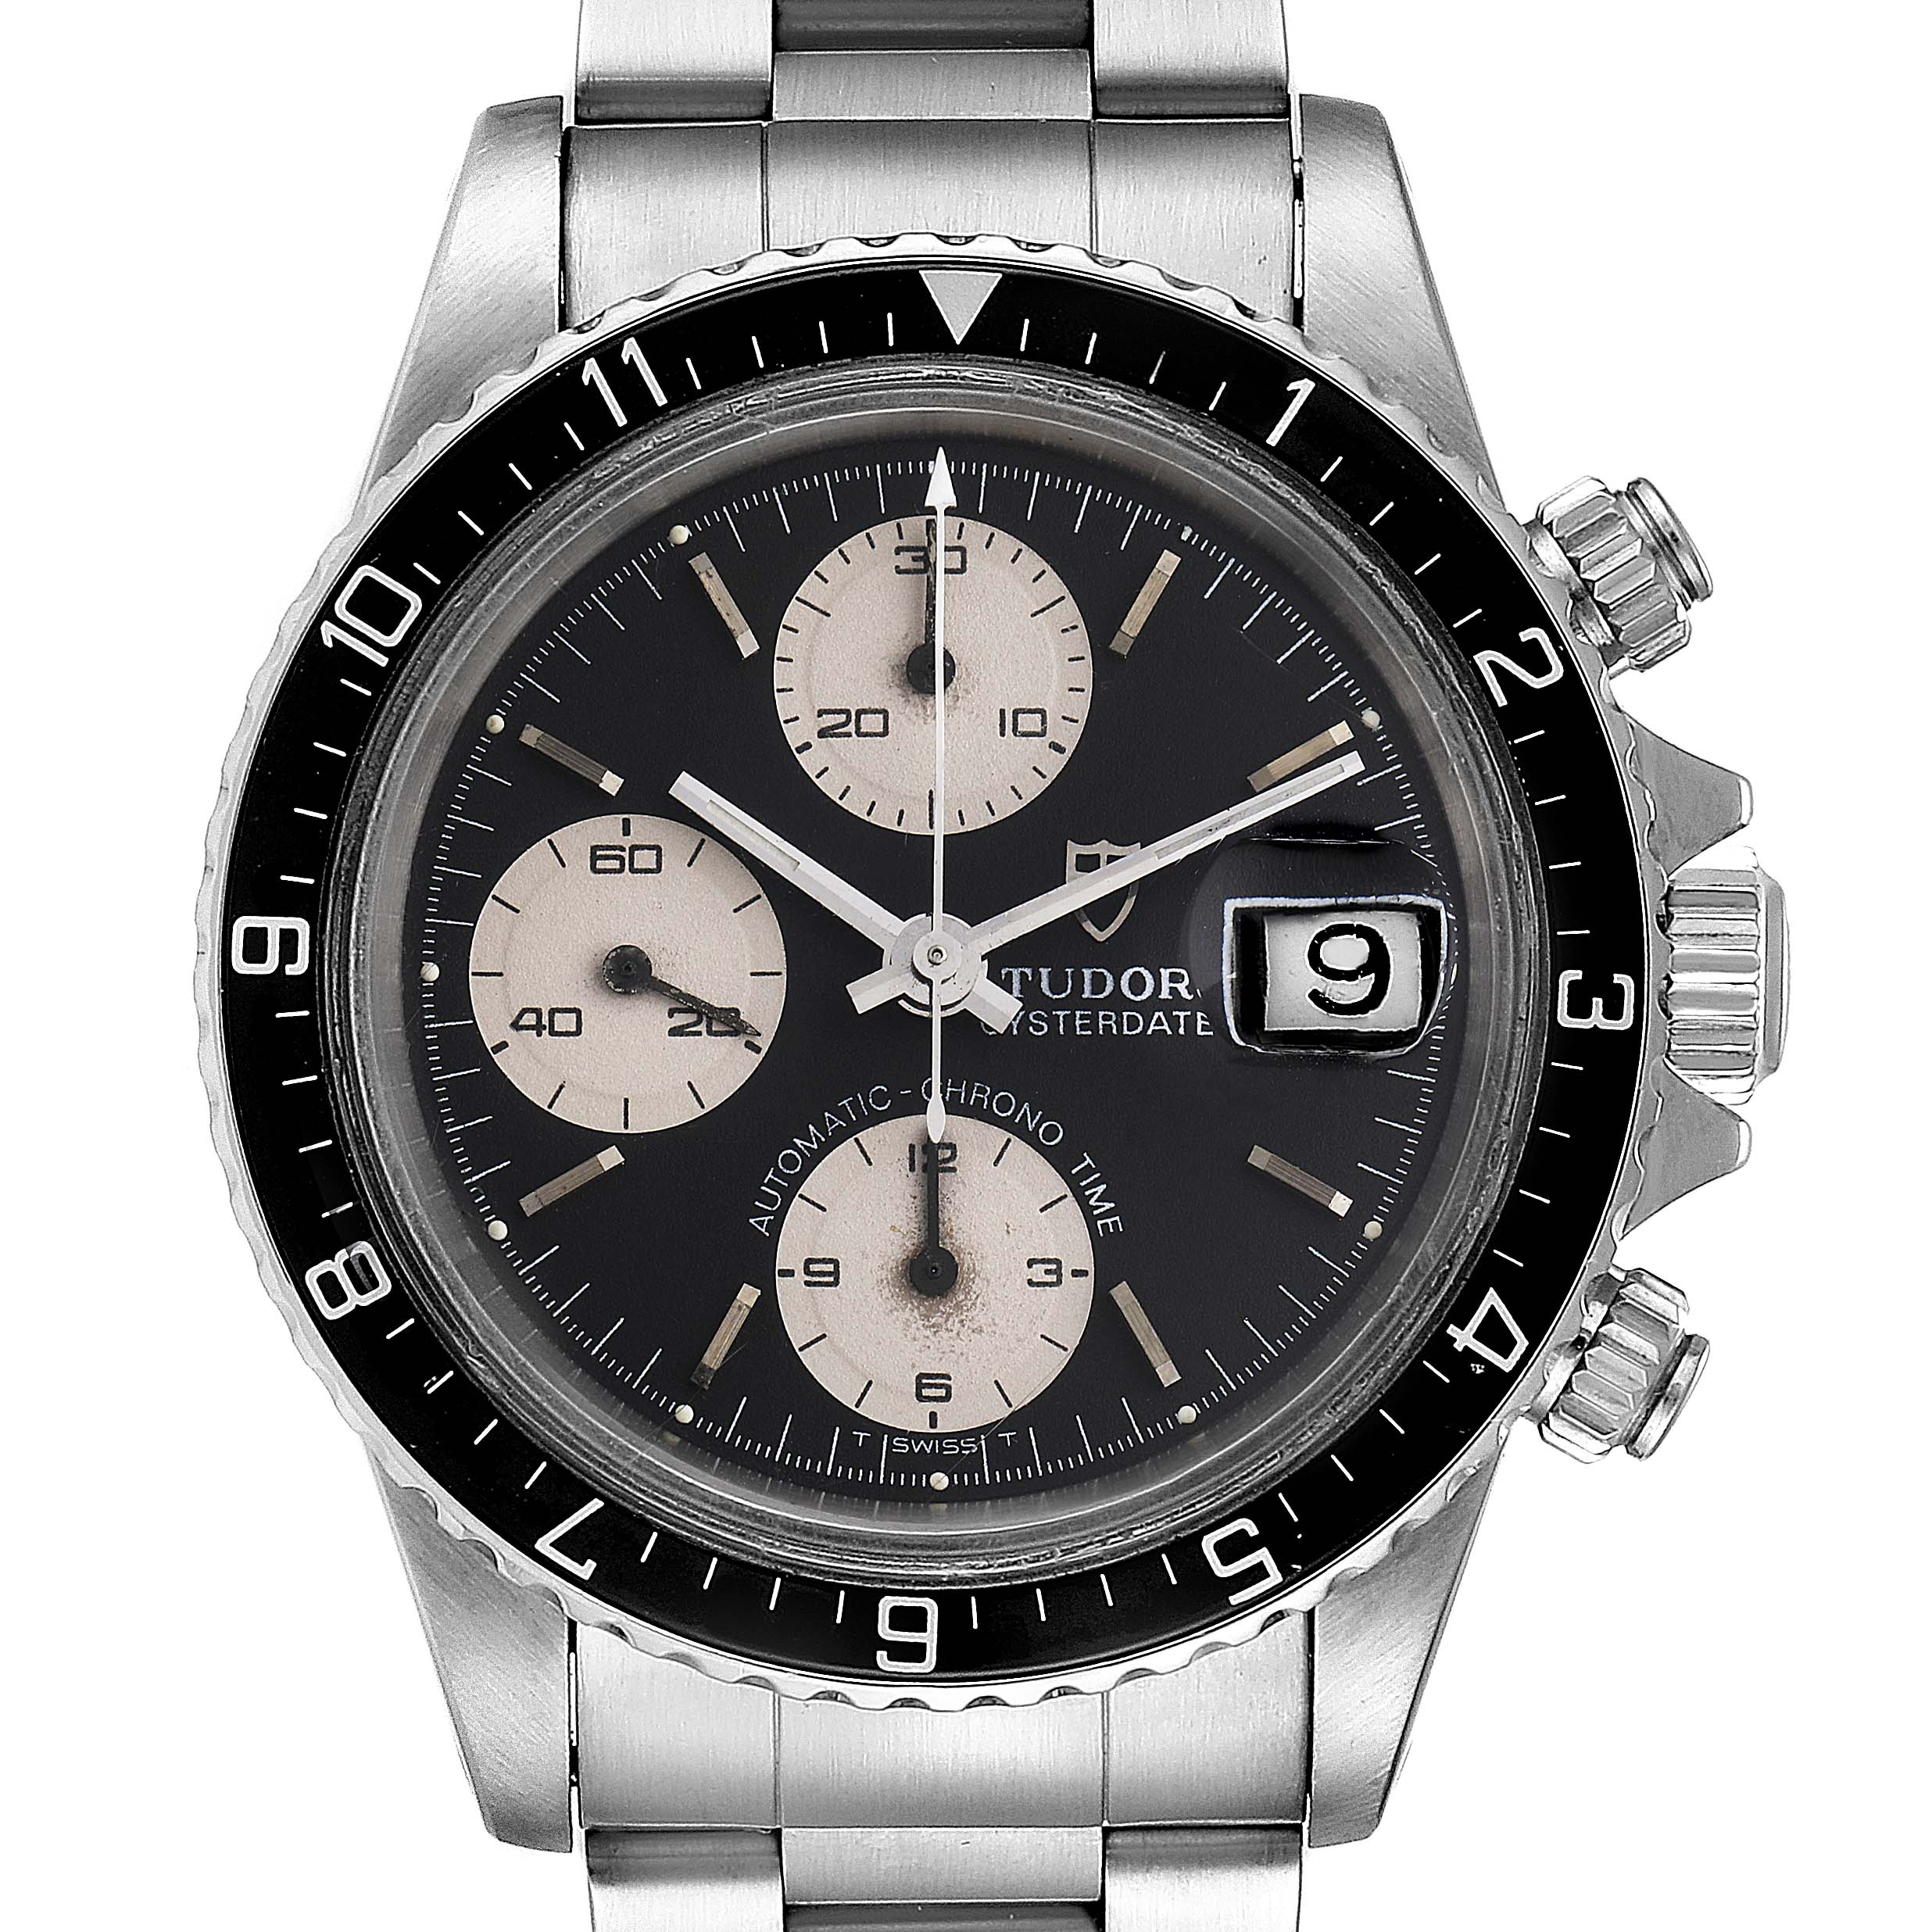 Photo of Tudor Oysterdate Big Block Vintage Chronograph Steel Mens Watch 79170